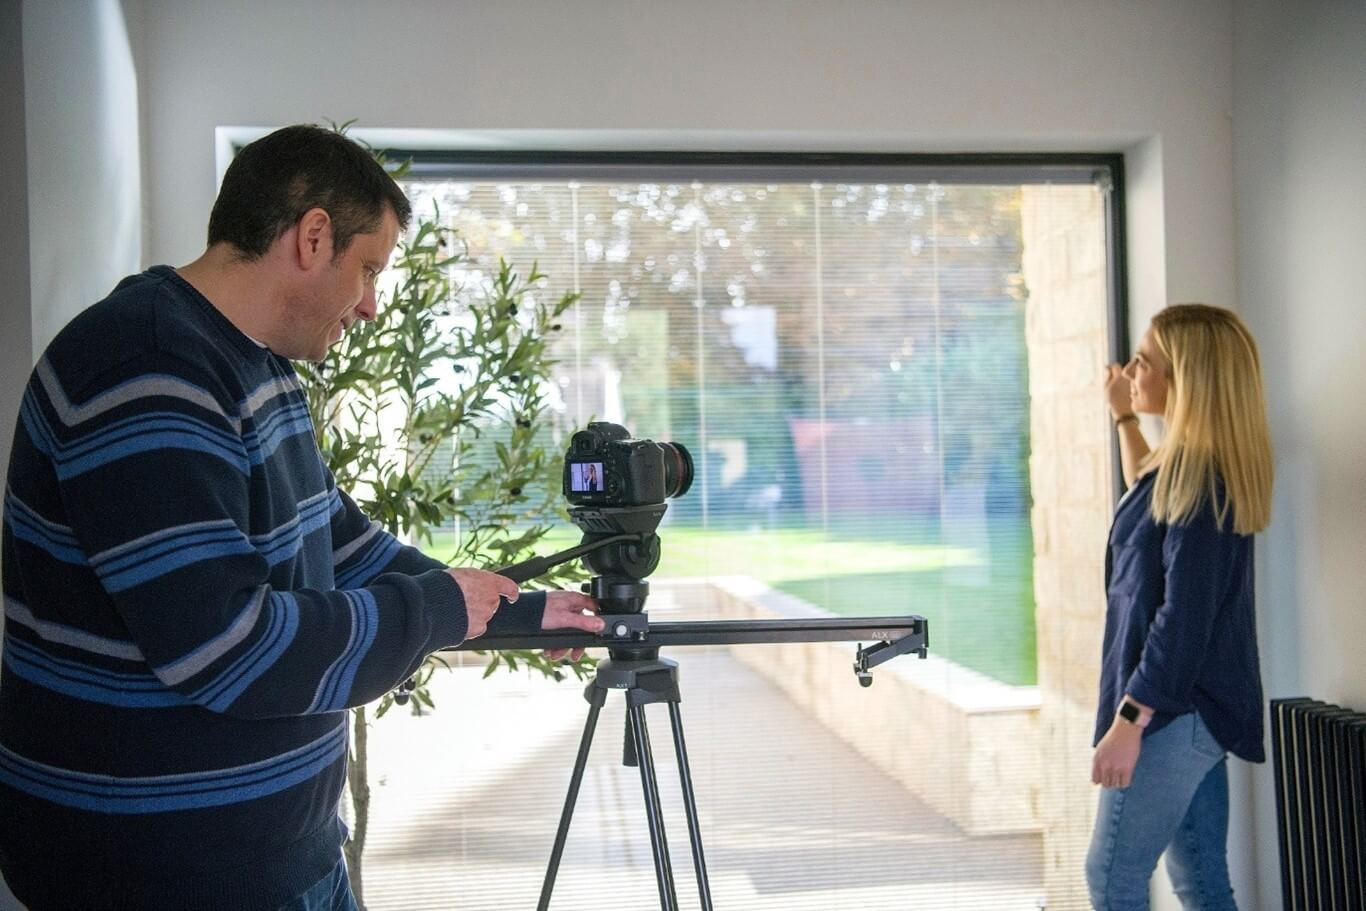 Morley Glass and Video Production 4 join forces to help industry unlock video's potential